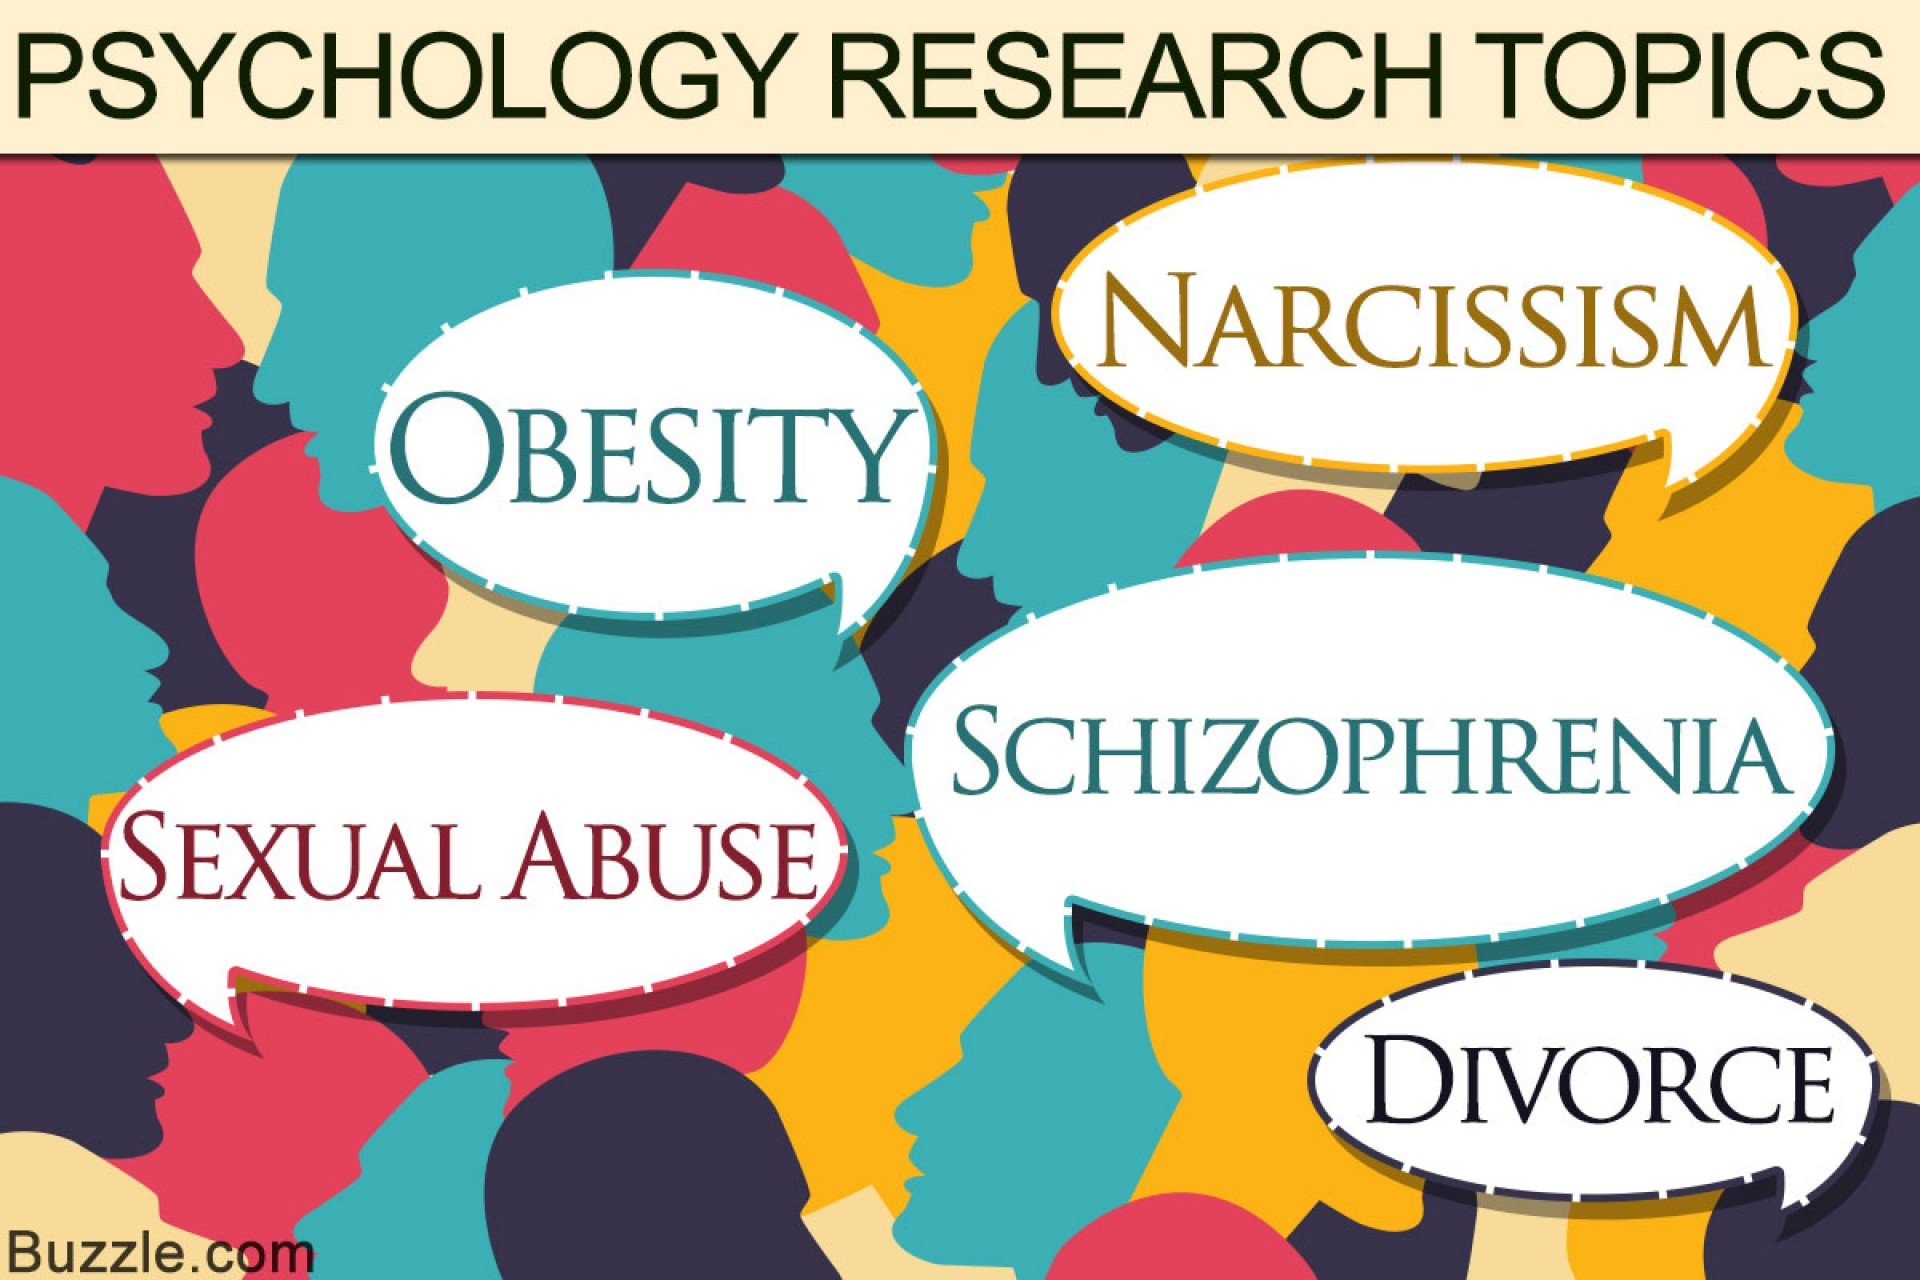 004 Obesity Research Paper Topics Fascinating Childhood 1920